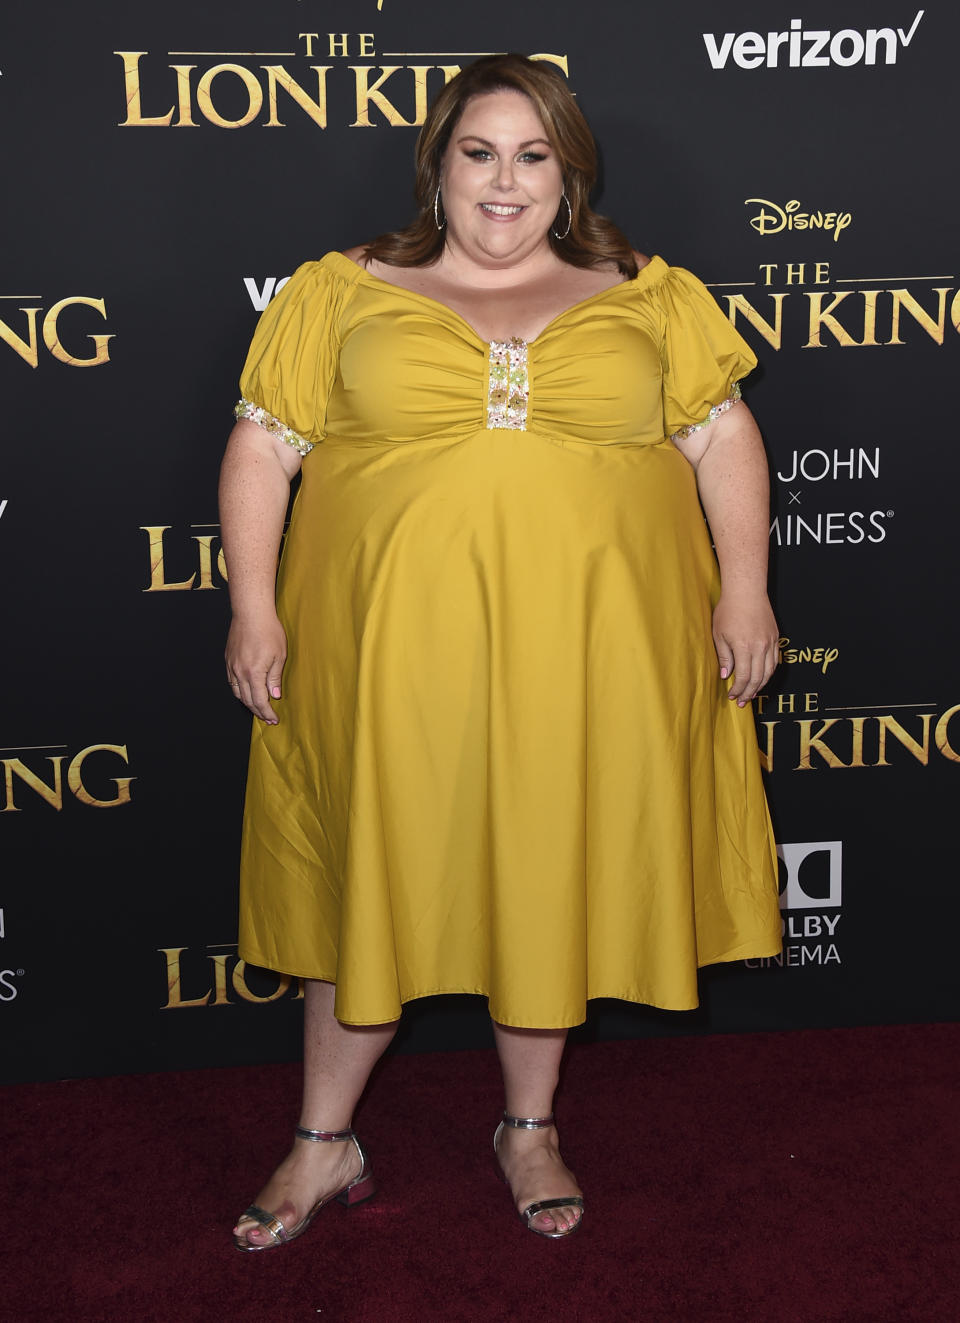 """Chrissy Metz arrives at the world premiere of """"The Lion King"""" on Tuesday, July 9, 2019, at the Dolby Theatre in Los Angeles. (Photo by Jordan Strauss/Invision/AP)"""